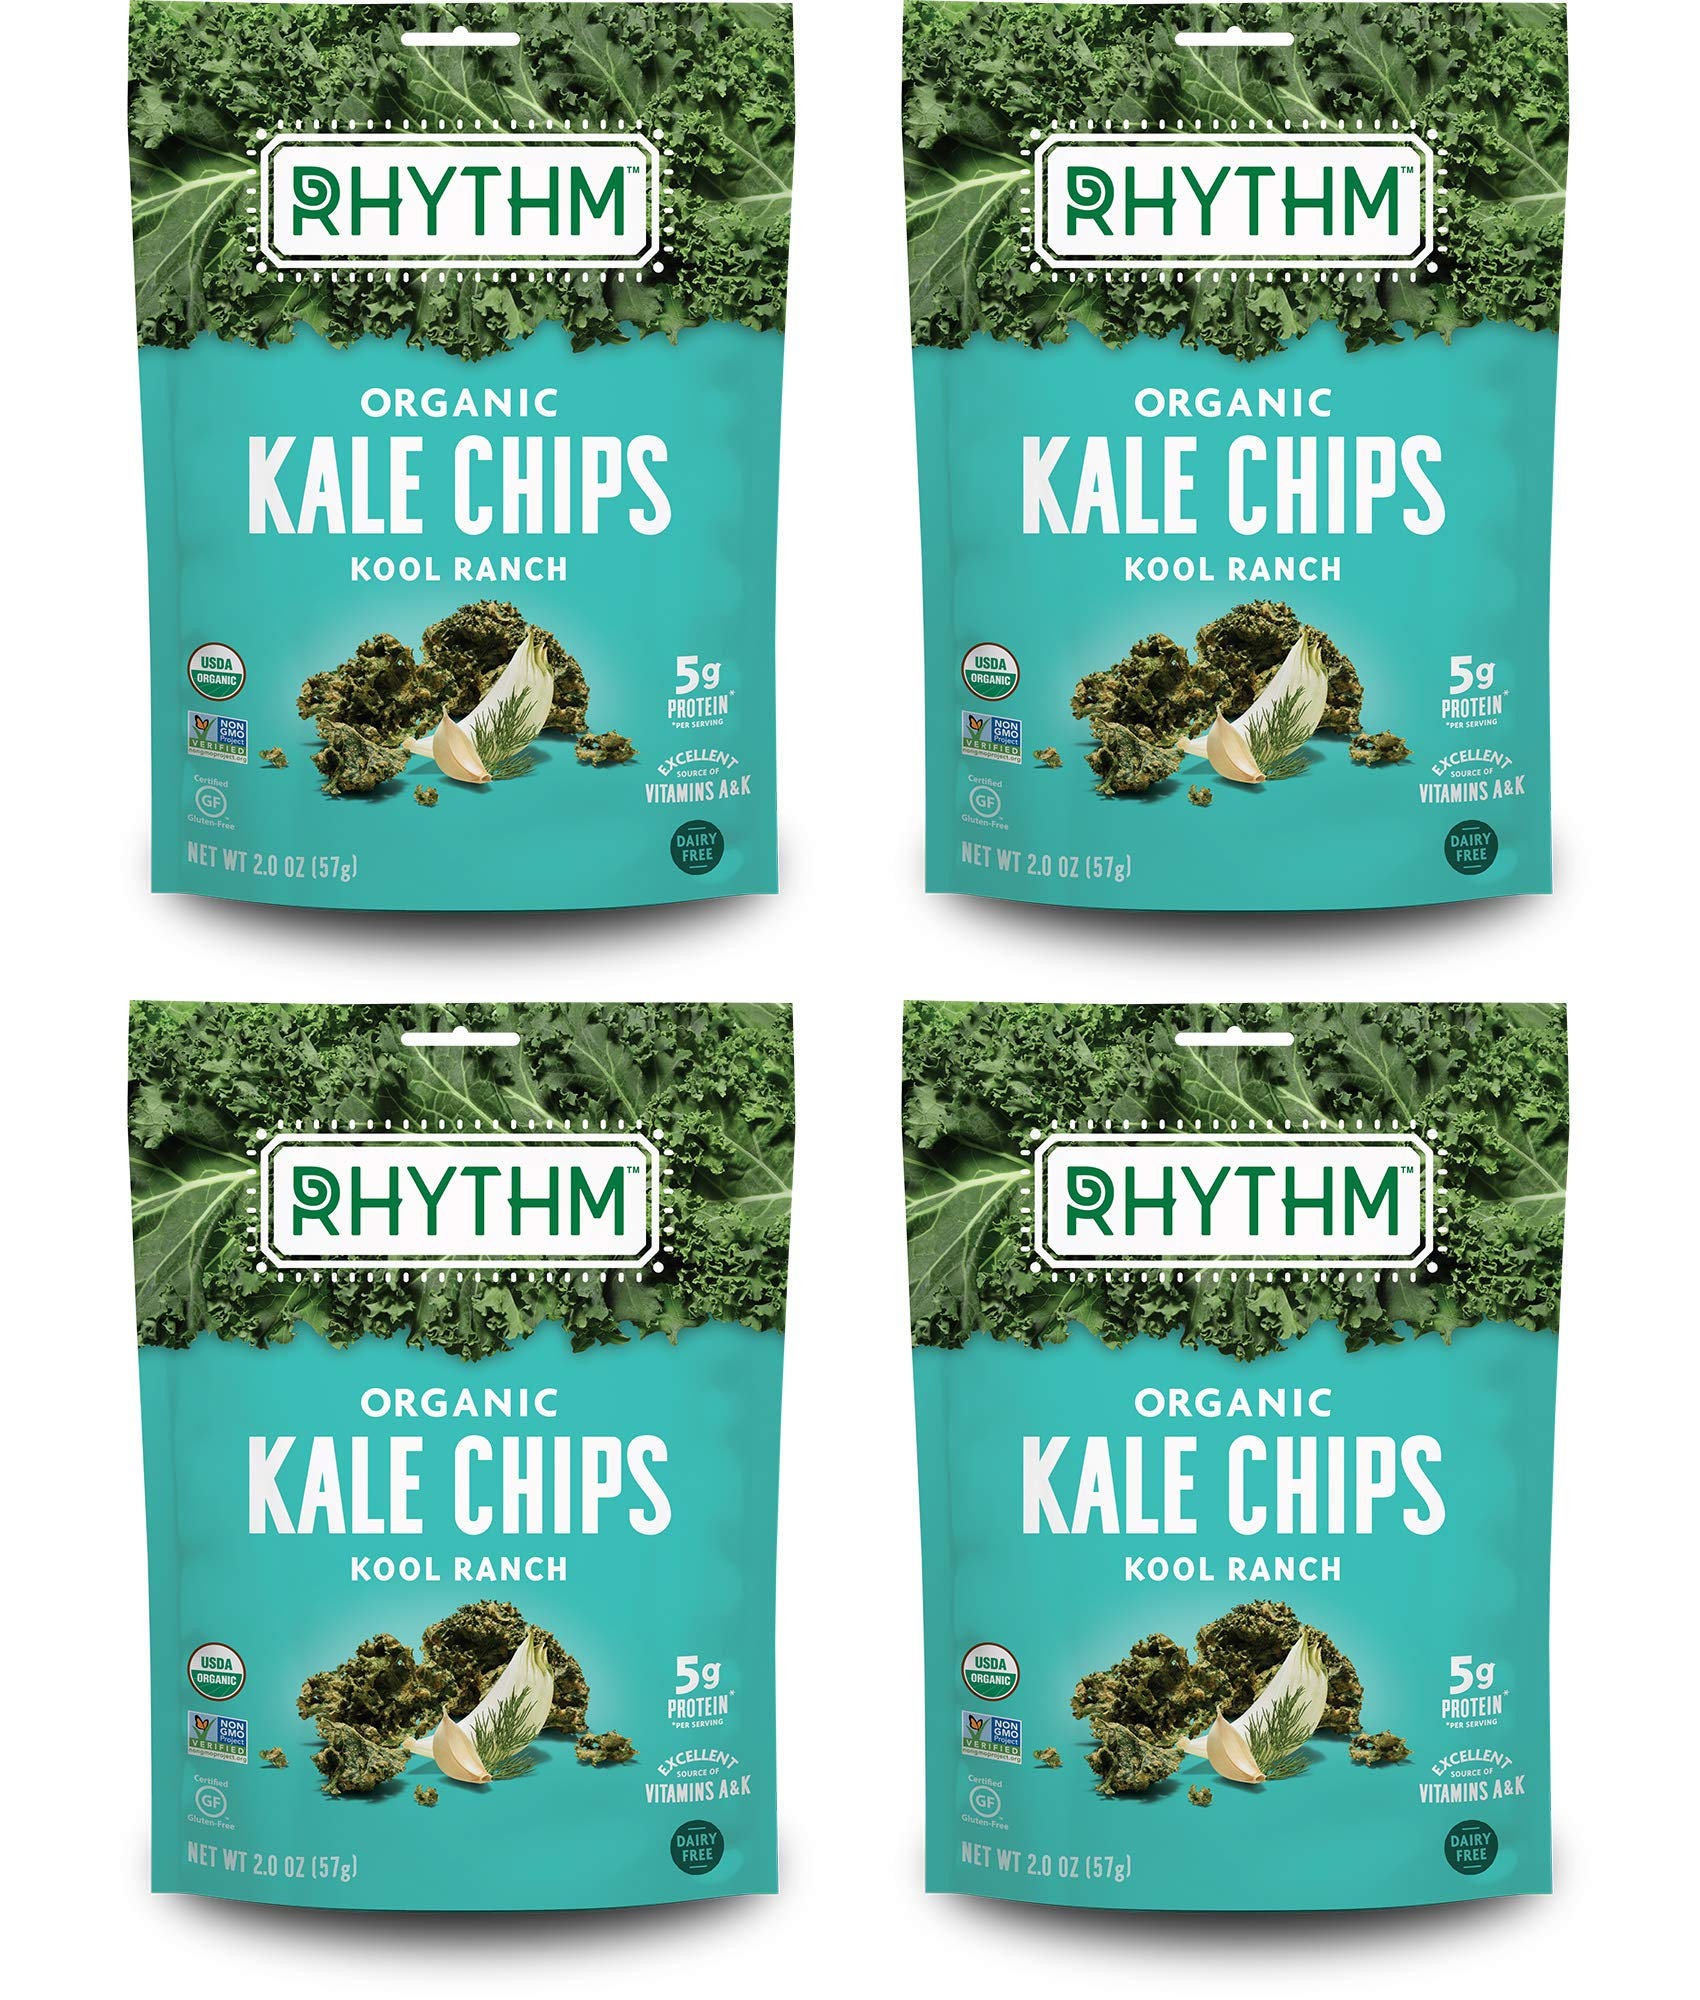 Rhythm Superfoods Kale Chips, Kool Ranch, Organic and Non-GMO, 2.0 Oz (Pack of 4), Vegan/Gluten-Free Superfood Snacks